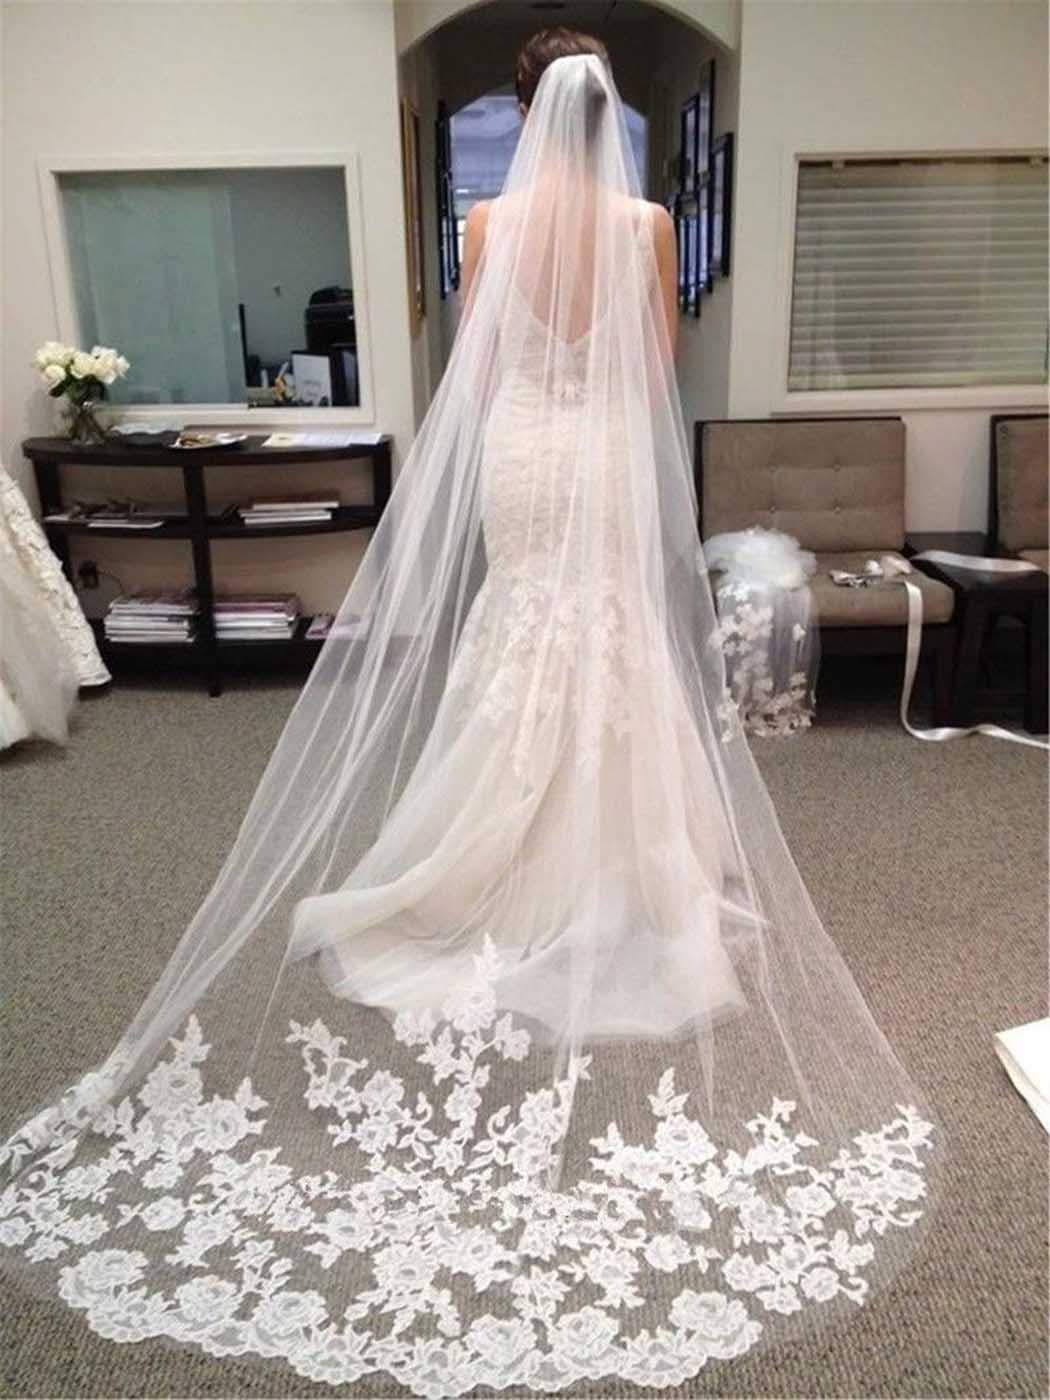 Salliy Layer Wedding Veil Bridal Veil Embroidery Lace Edge Bride with Comb Cathedral Length Hair Accessories (Ivory)